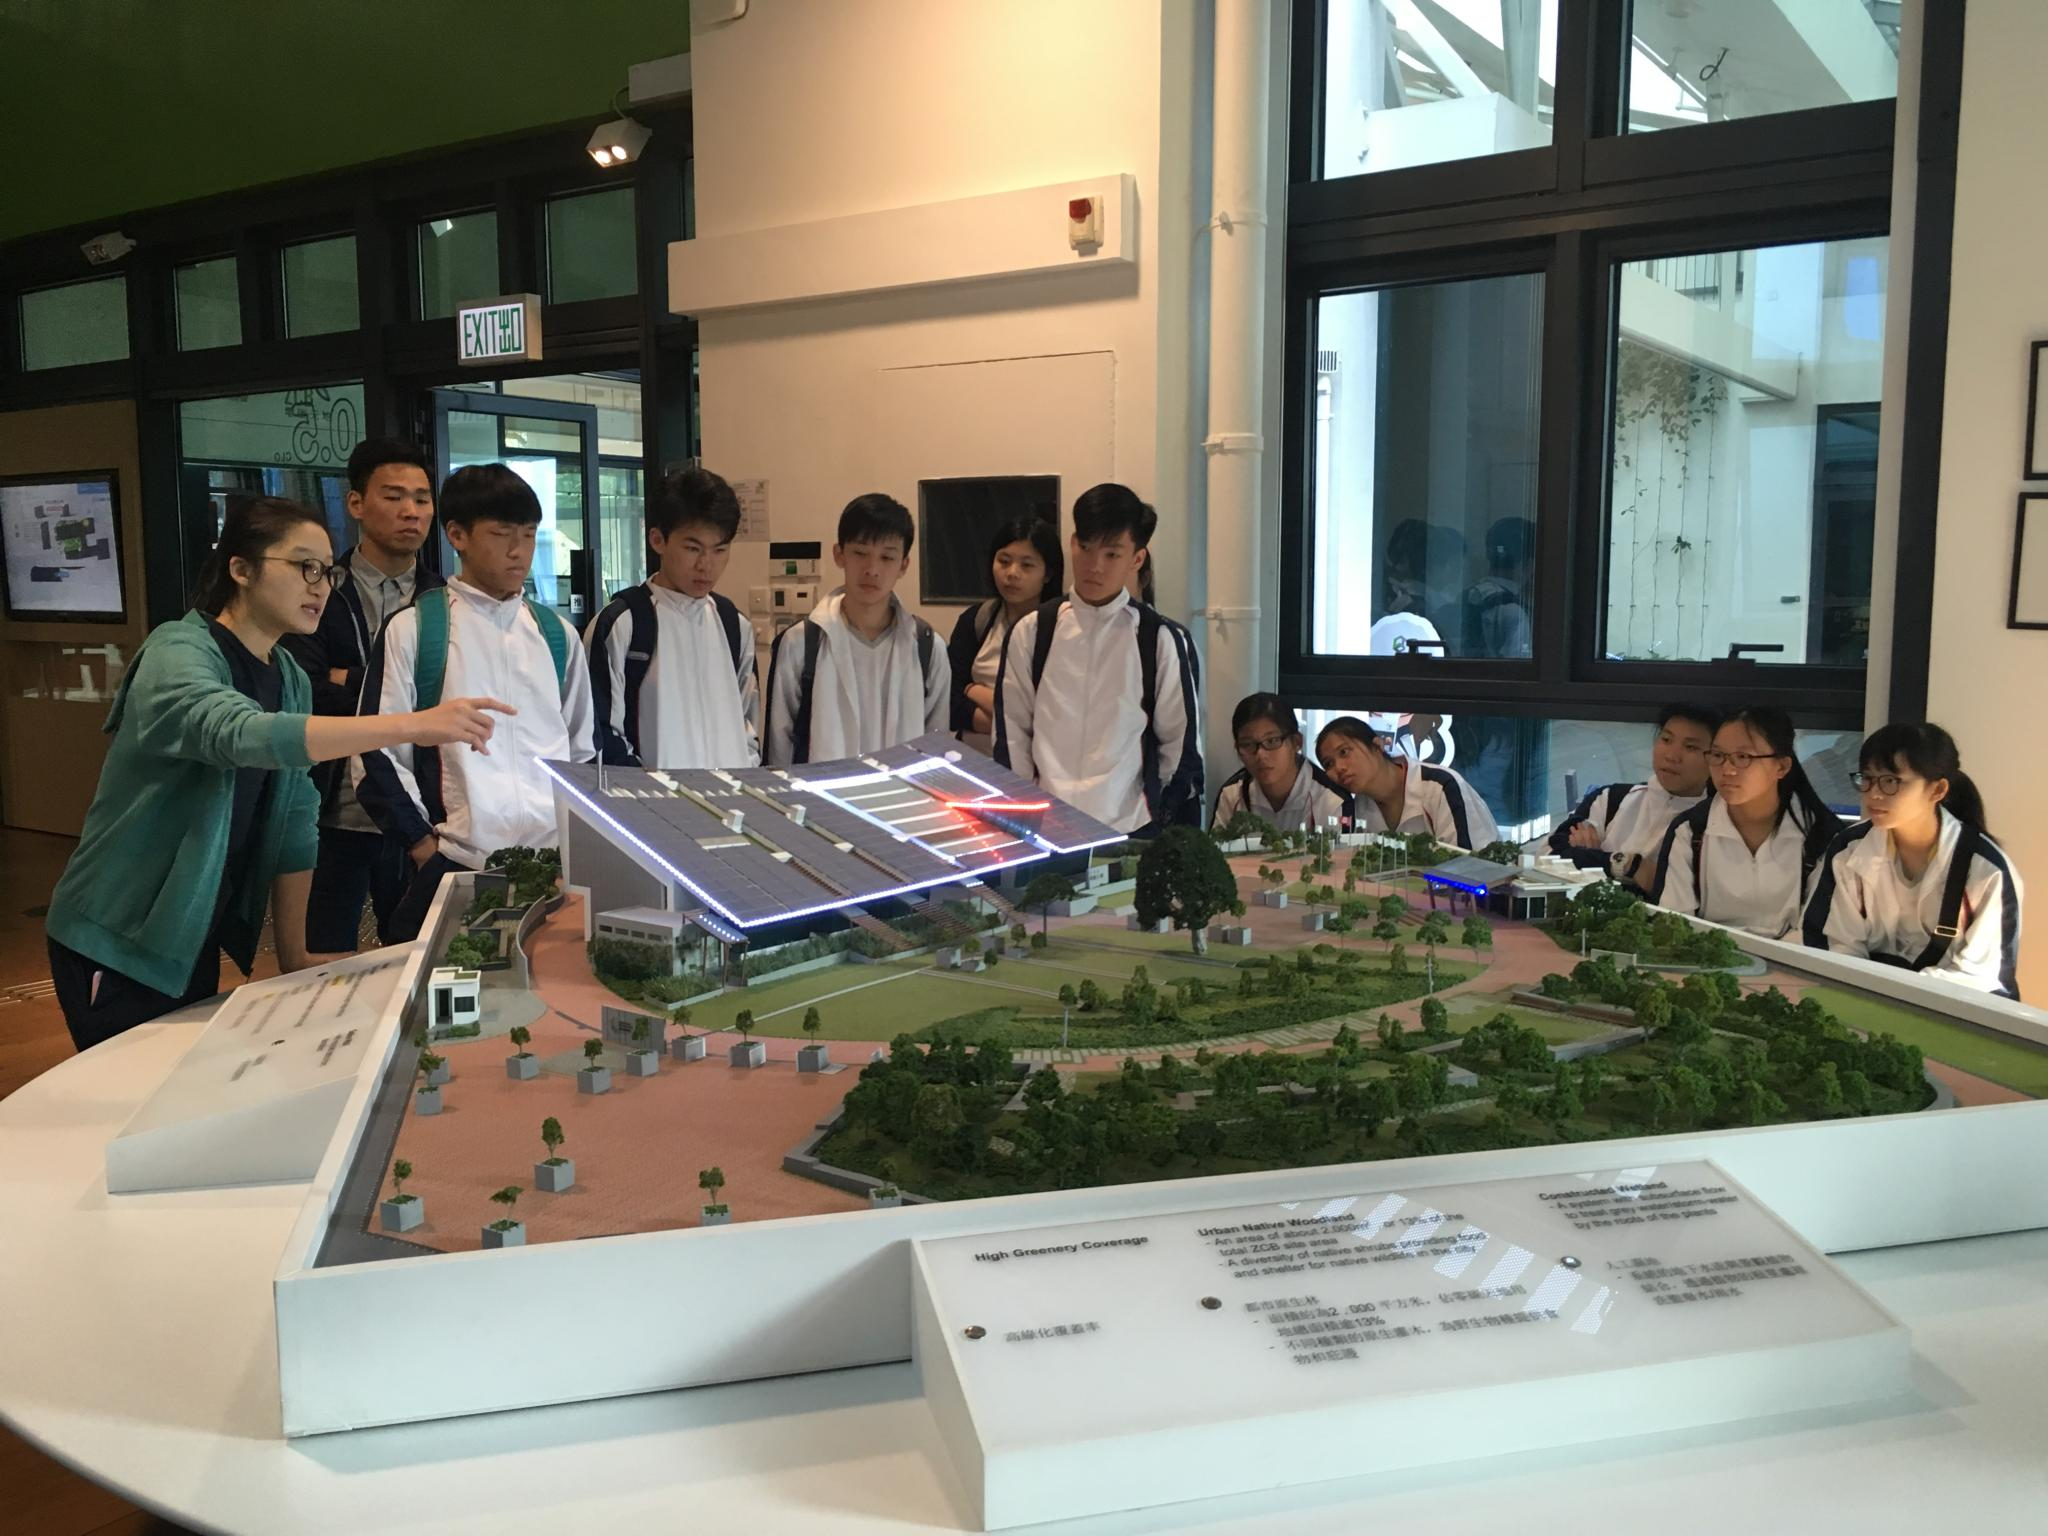 The staff was introducing the Zero Carbon Building design and technologies to the students.